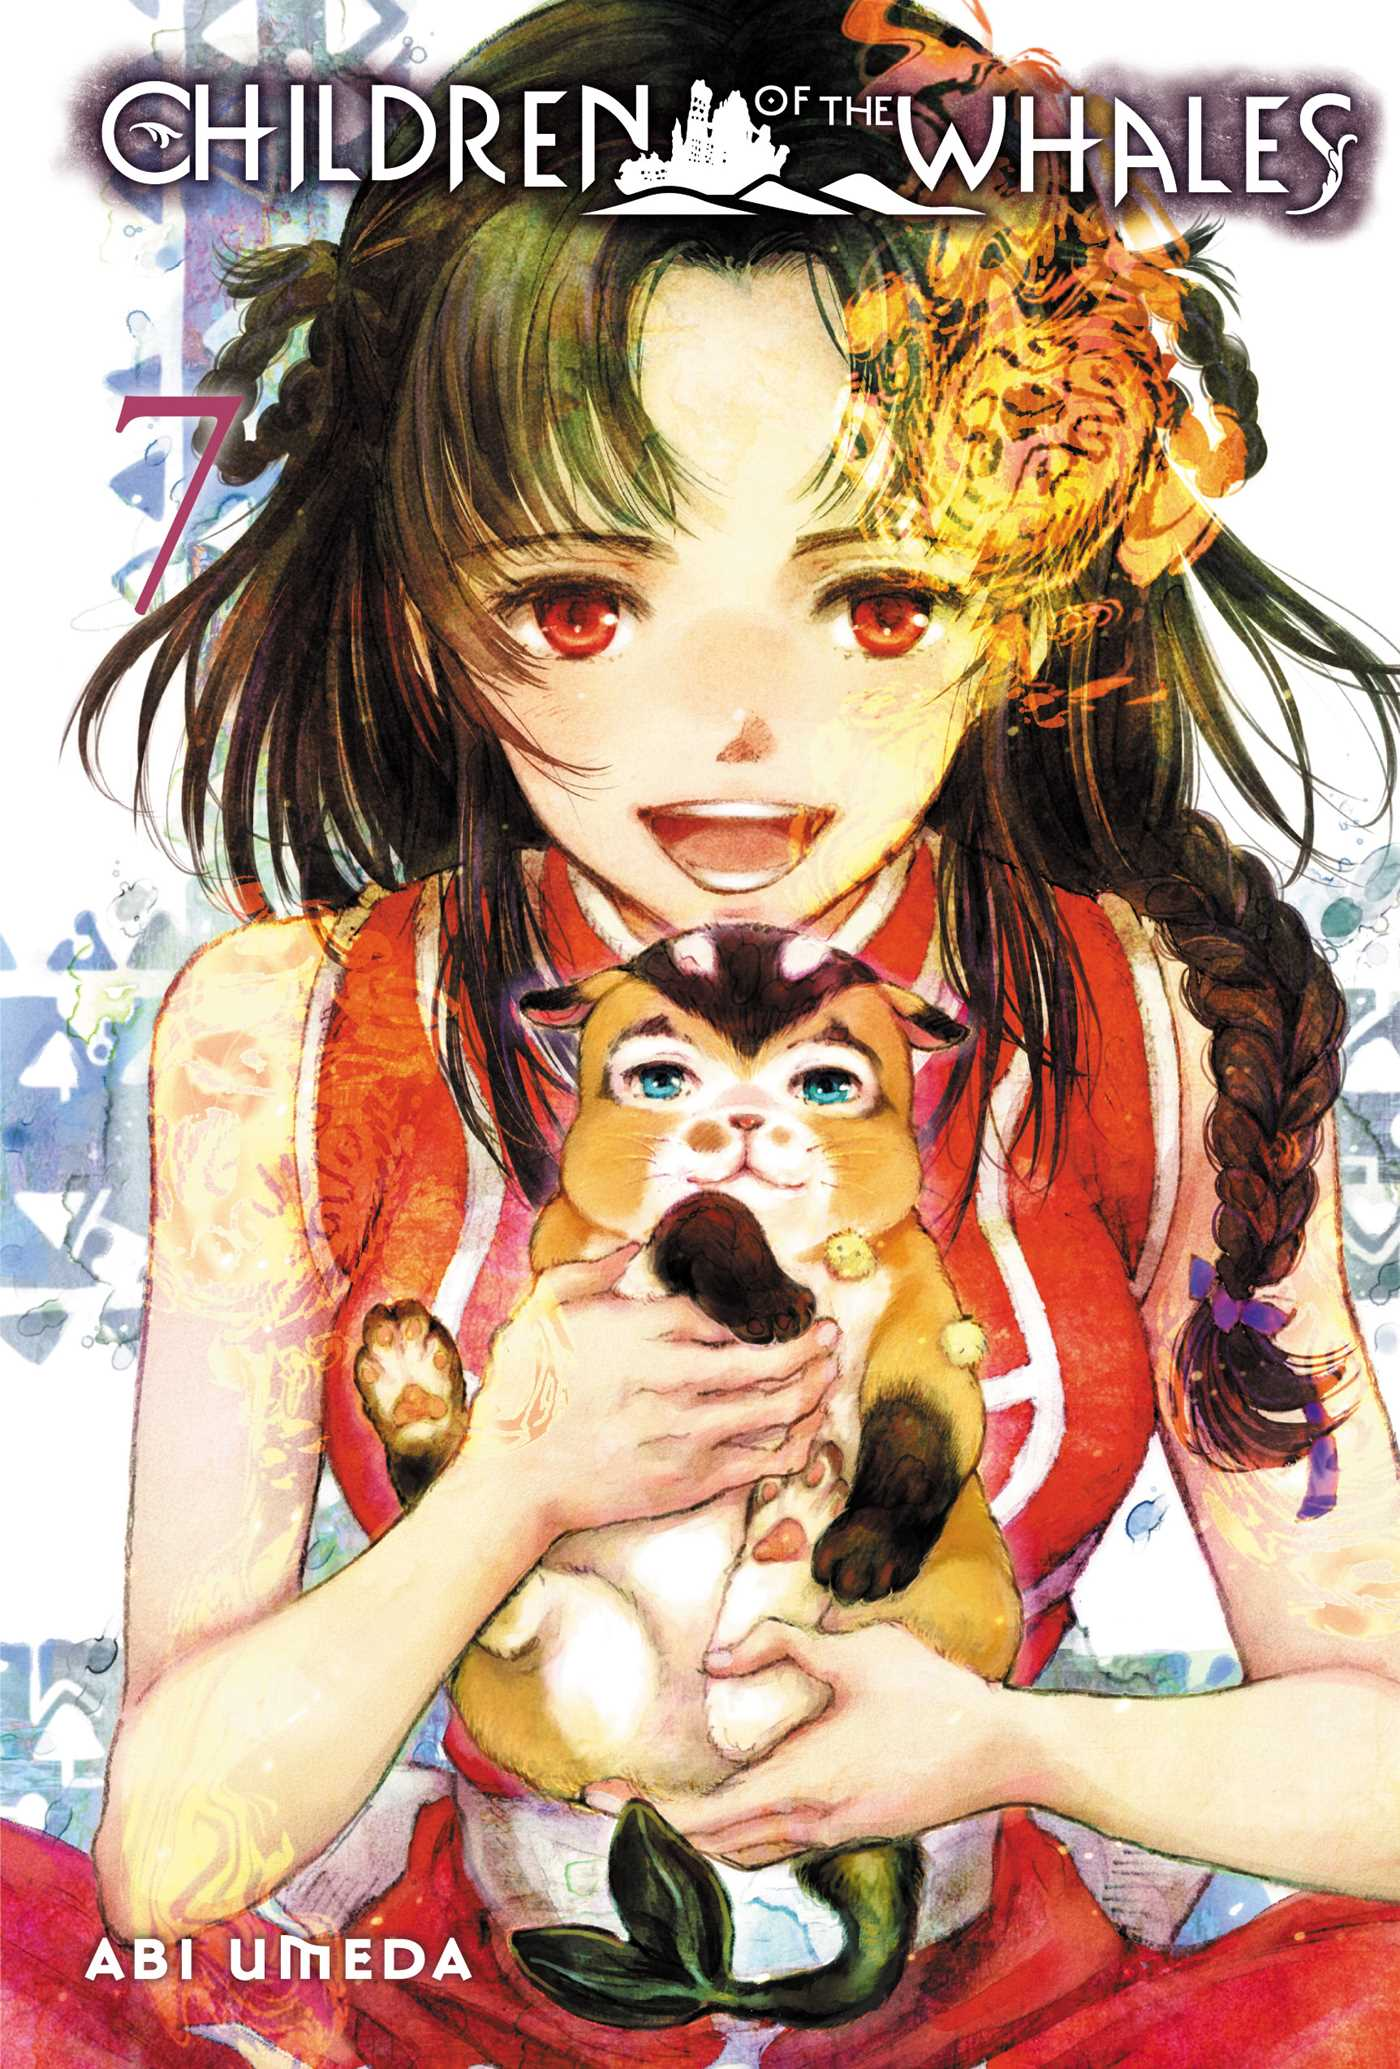 Children of the Whales Vol. 7 Review